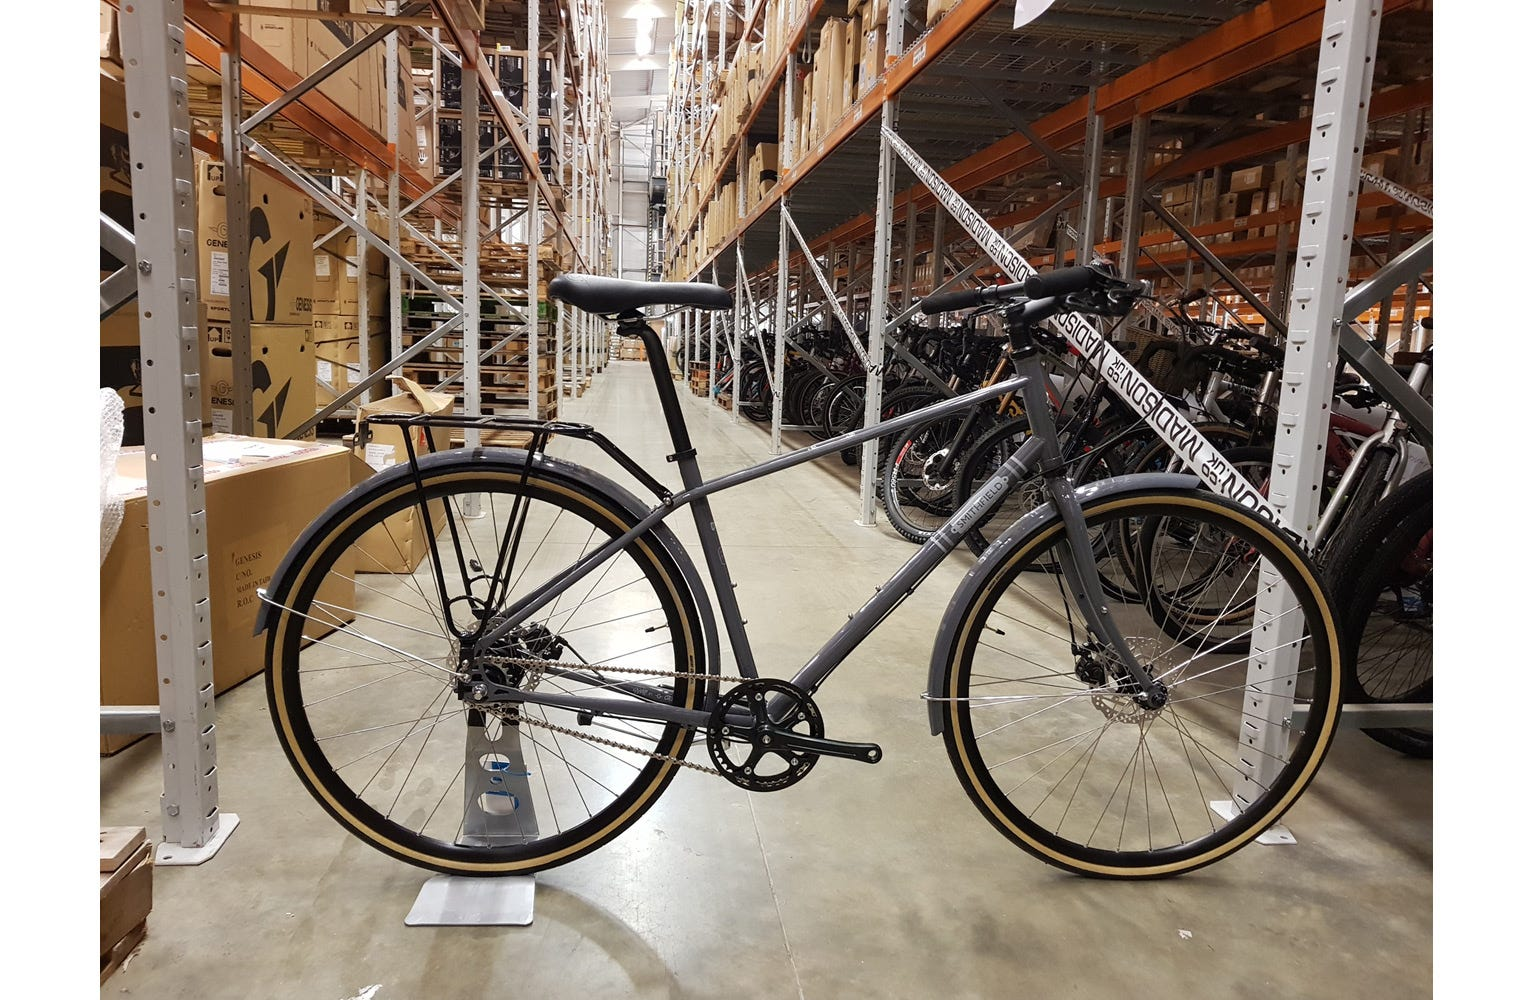 Genesis 2020 Smithfield MD Bike sample (used)